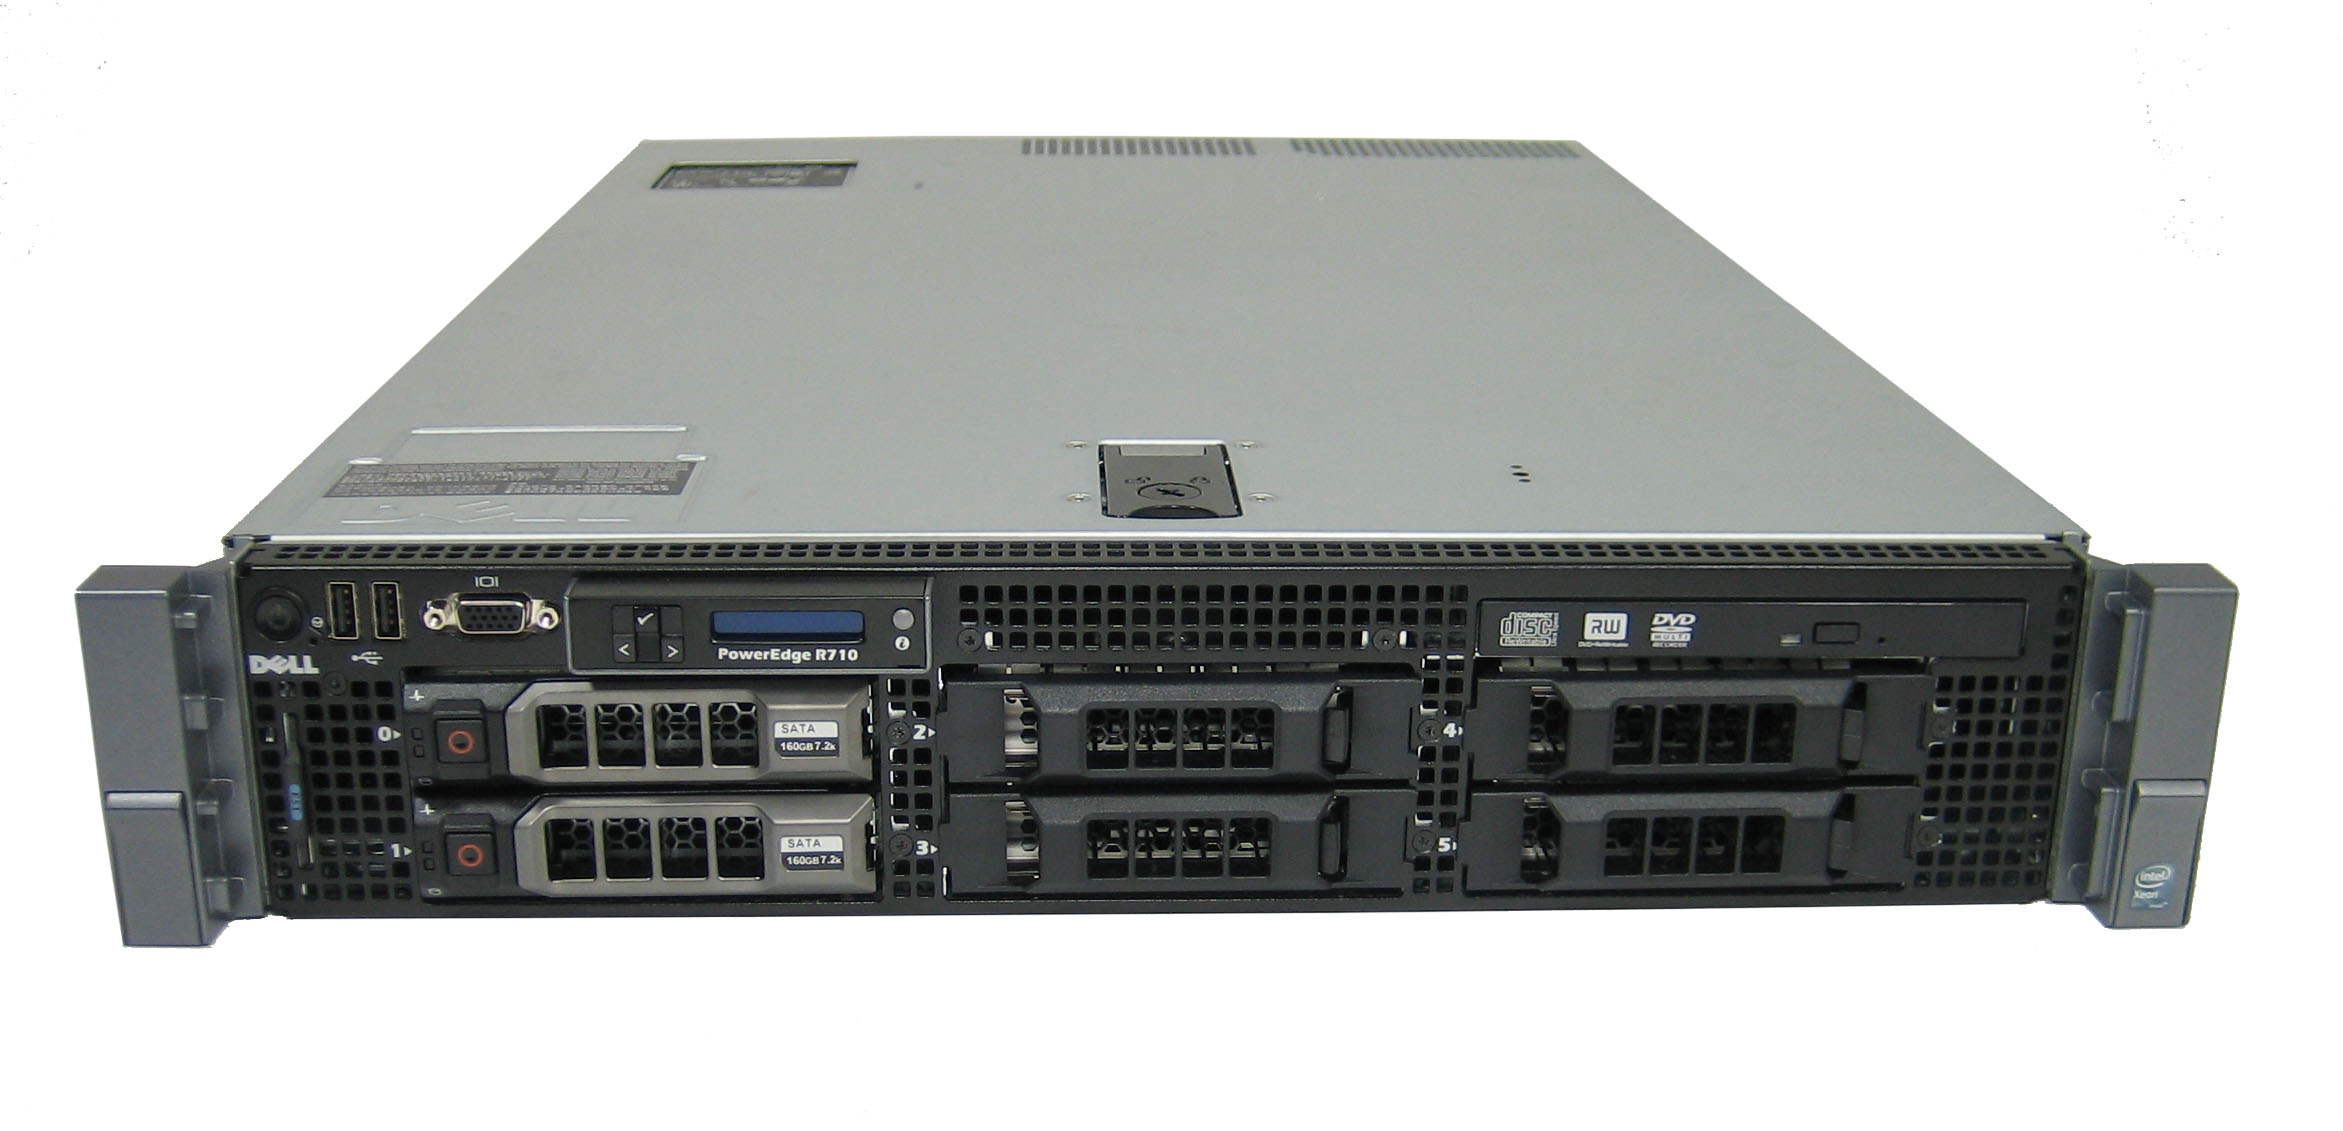 MÁY CHỦ SERVER DELL POWEREDGE R710 - CPU 2x L5520